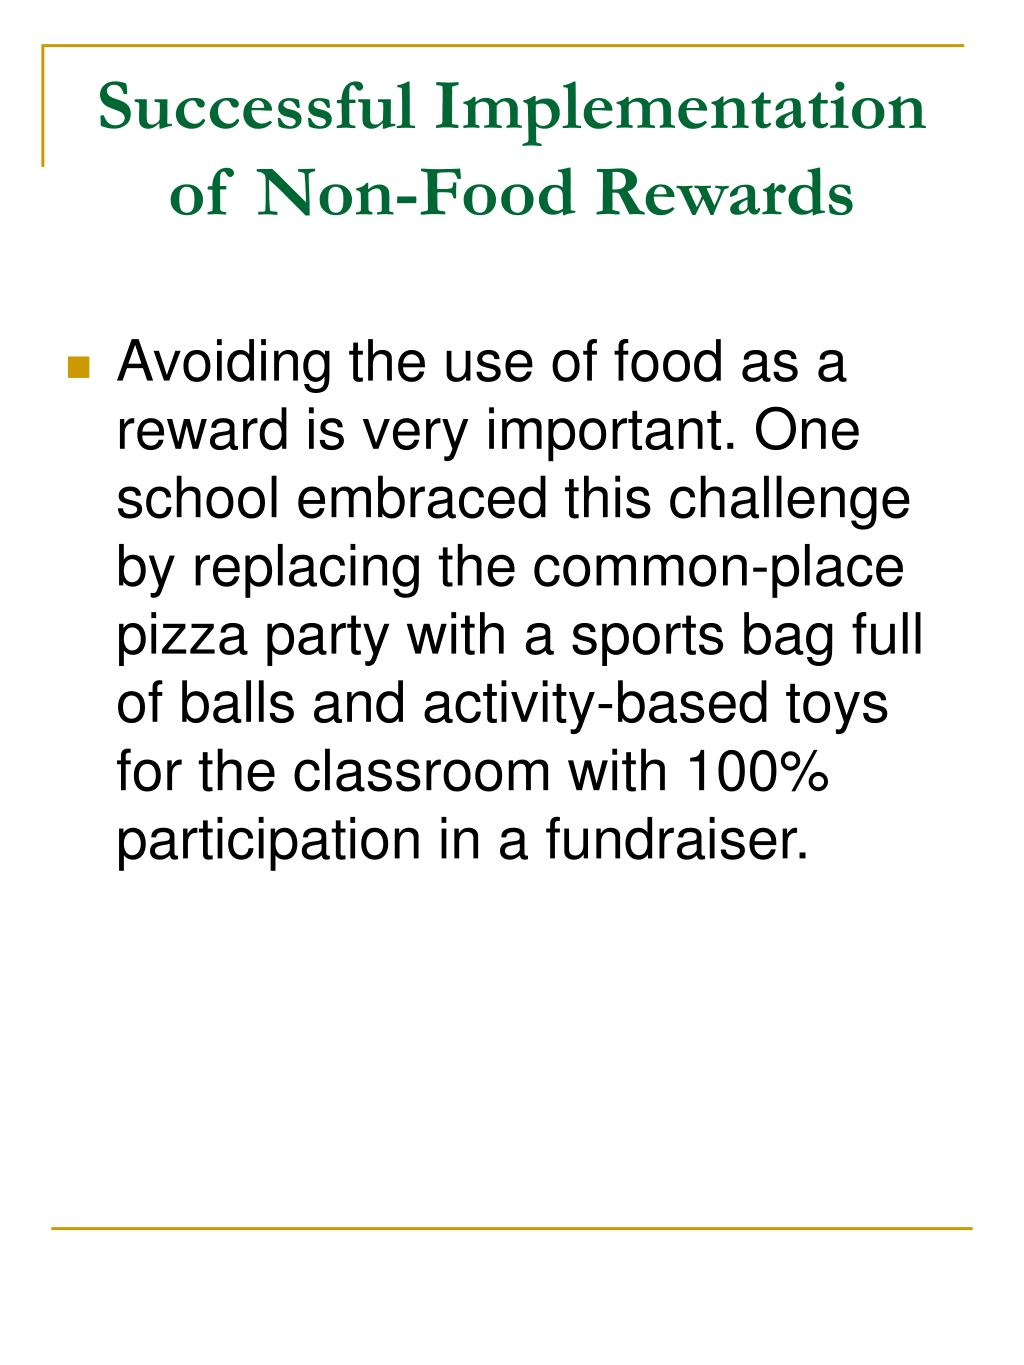 Successful Implementation of Non-Food Rewards